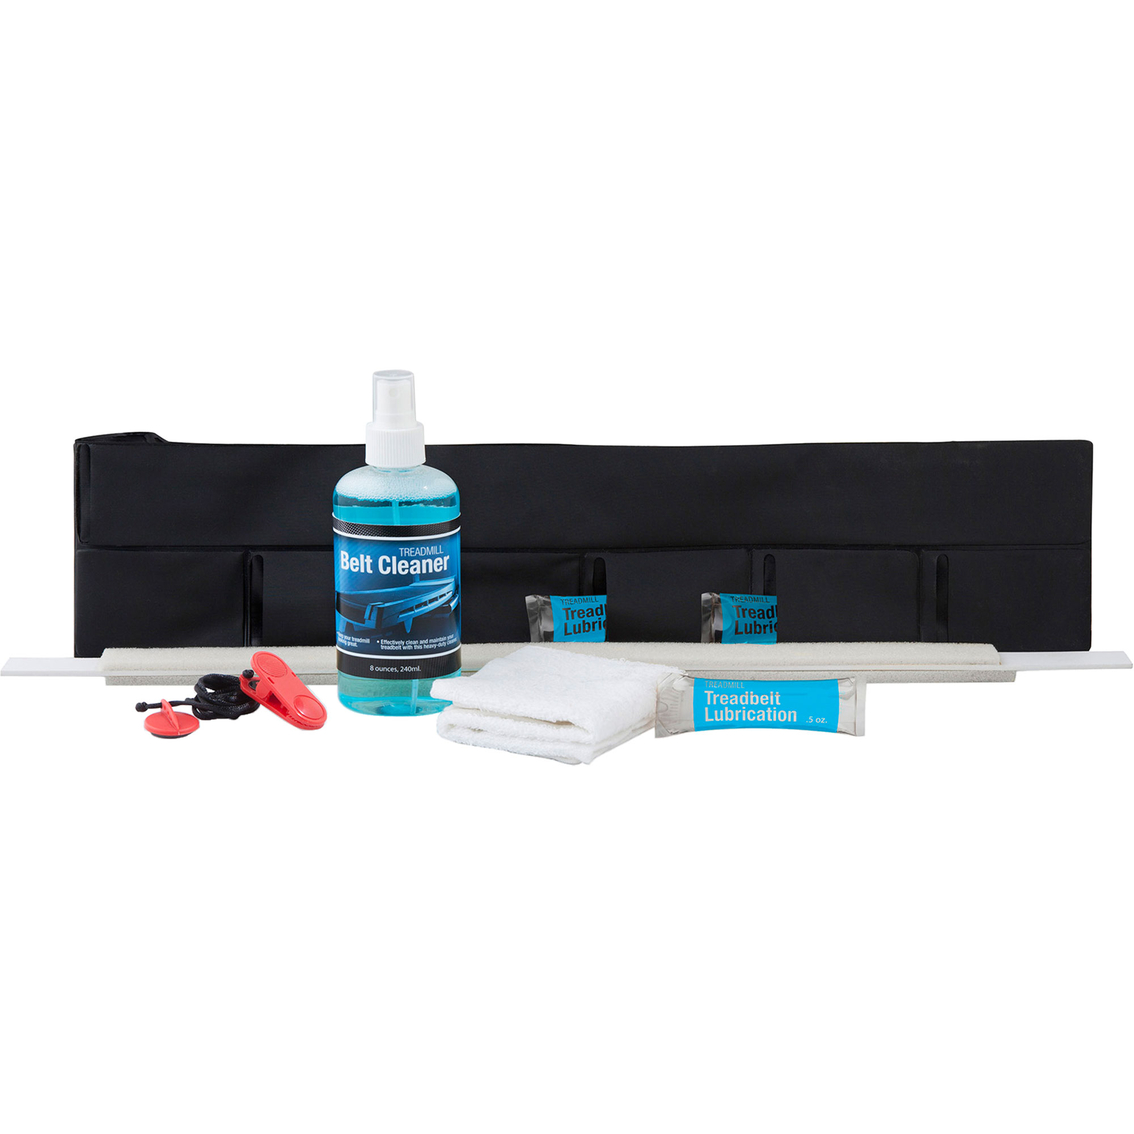 Treadmill Lubricant Instructions: Proform Treadmill Accessory Kit